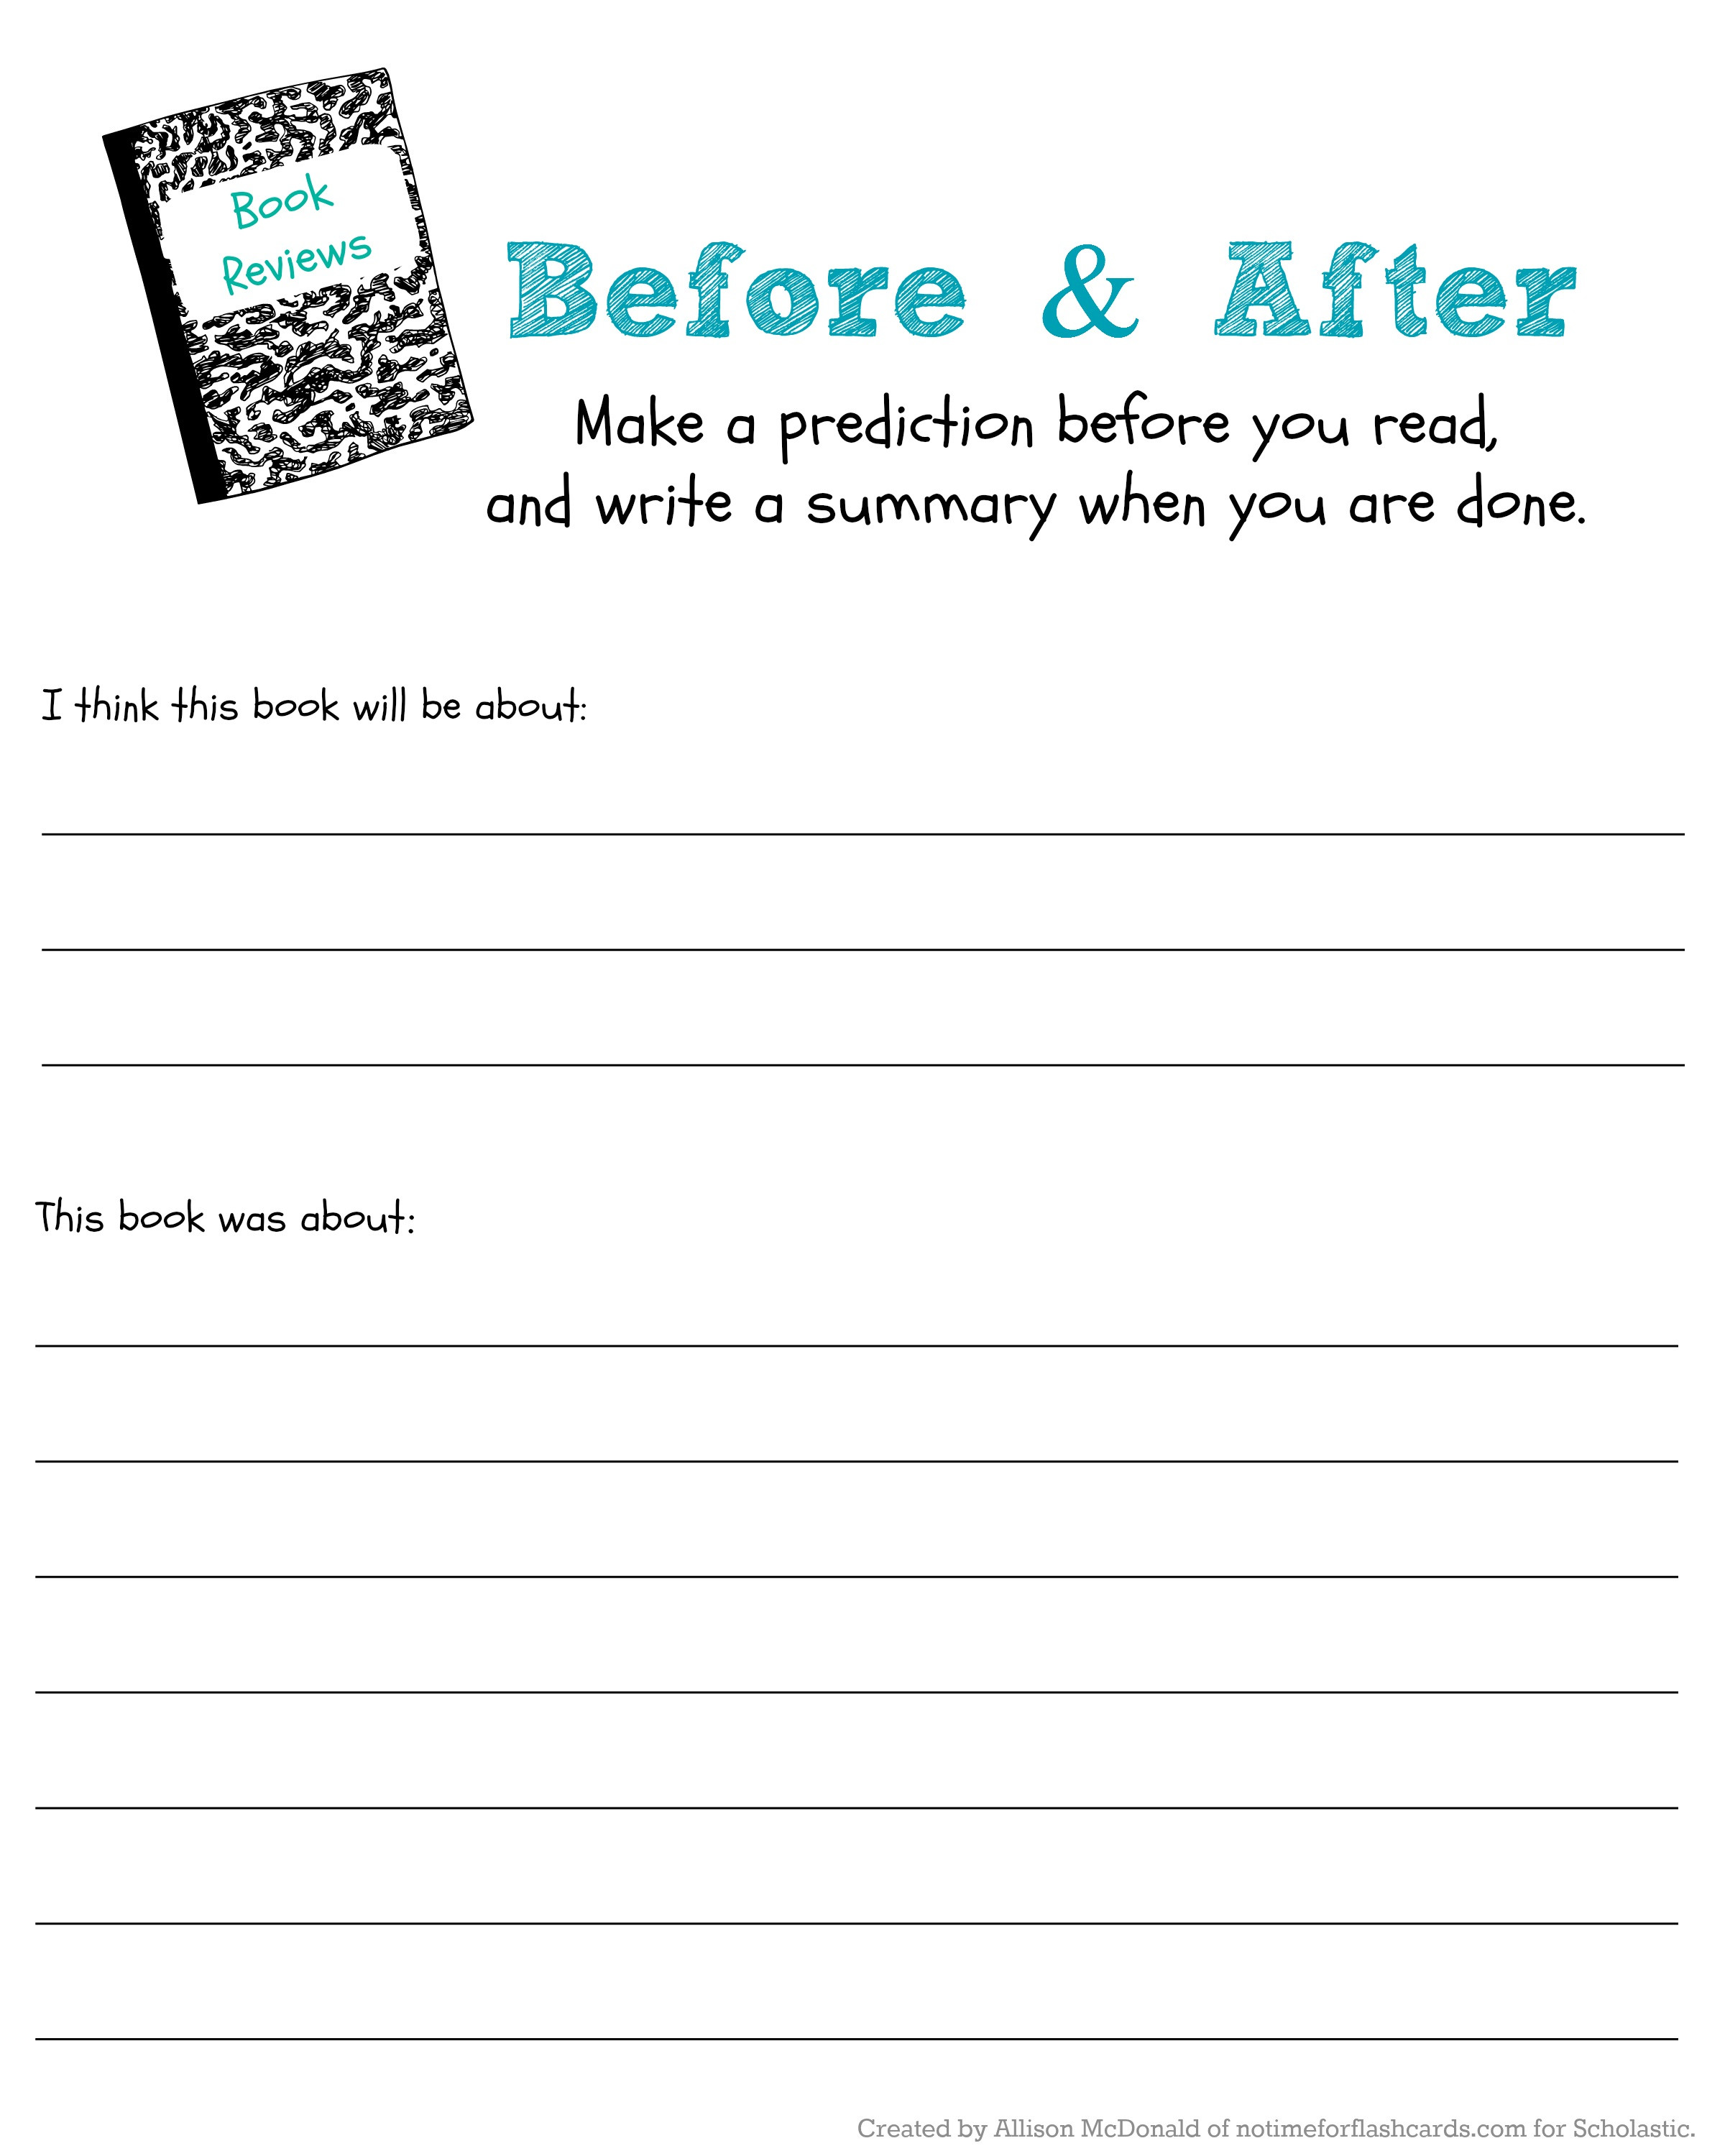 Making Predictions Worksheet 2nd Grade Judge A Book by Its Cover to Predict & Read